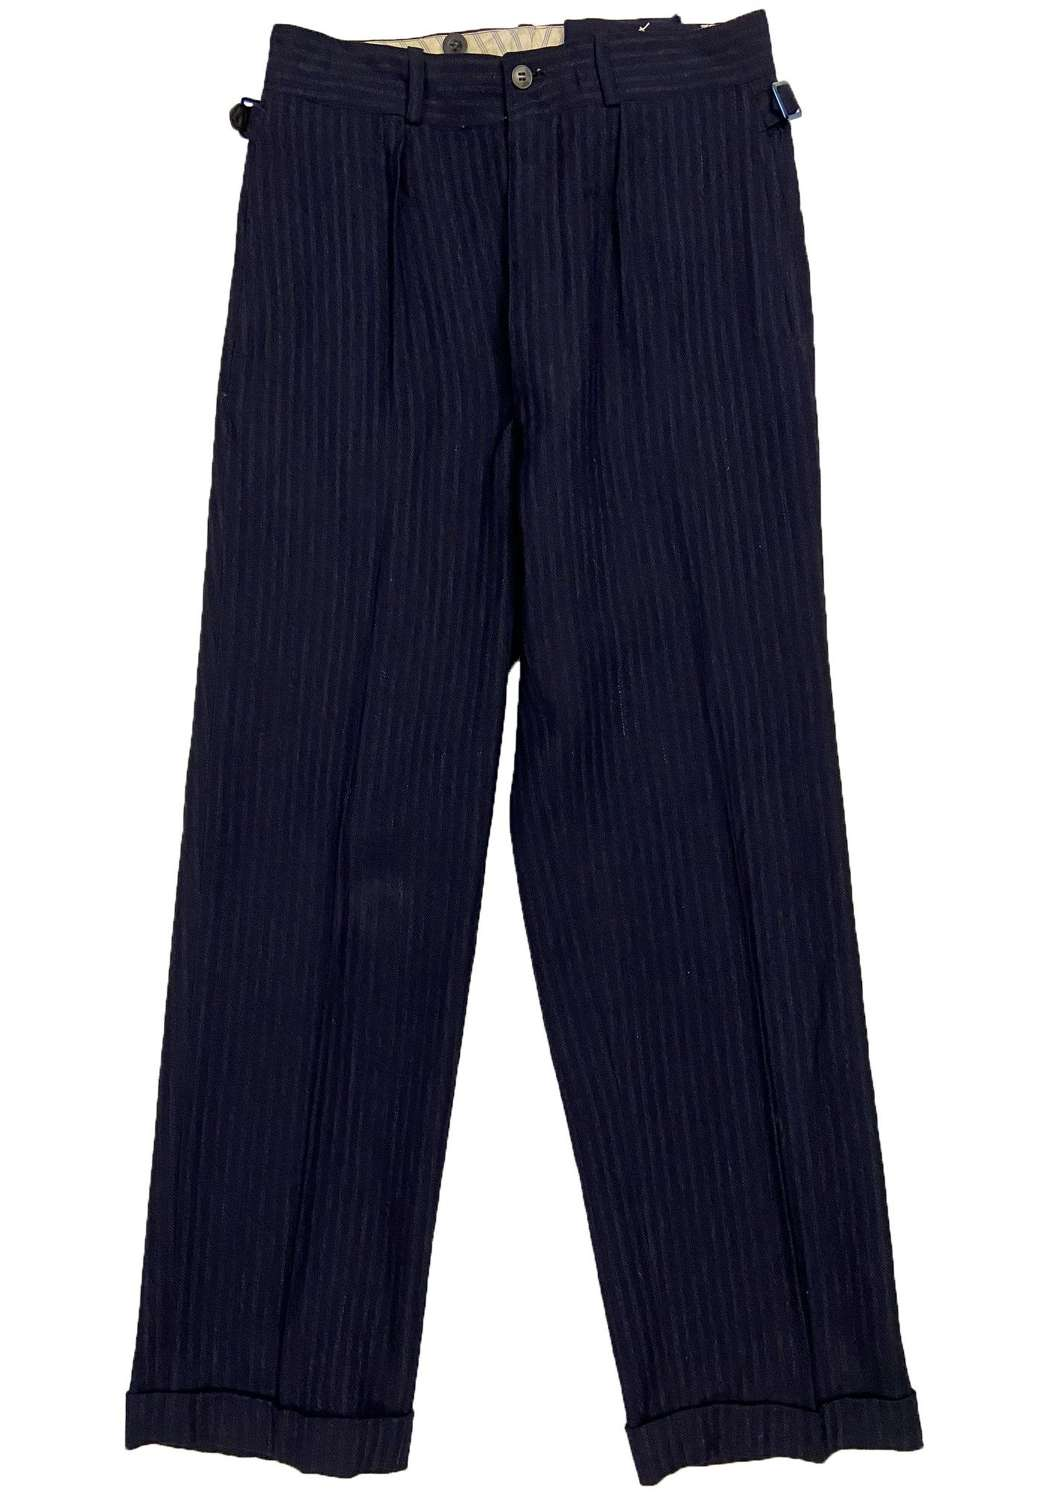 Original 1940s French Striped Wool Trousers